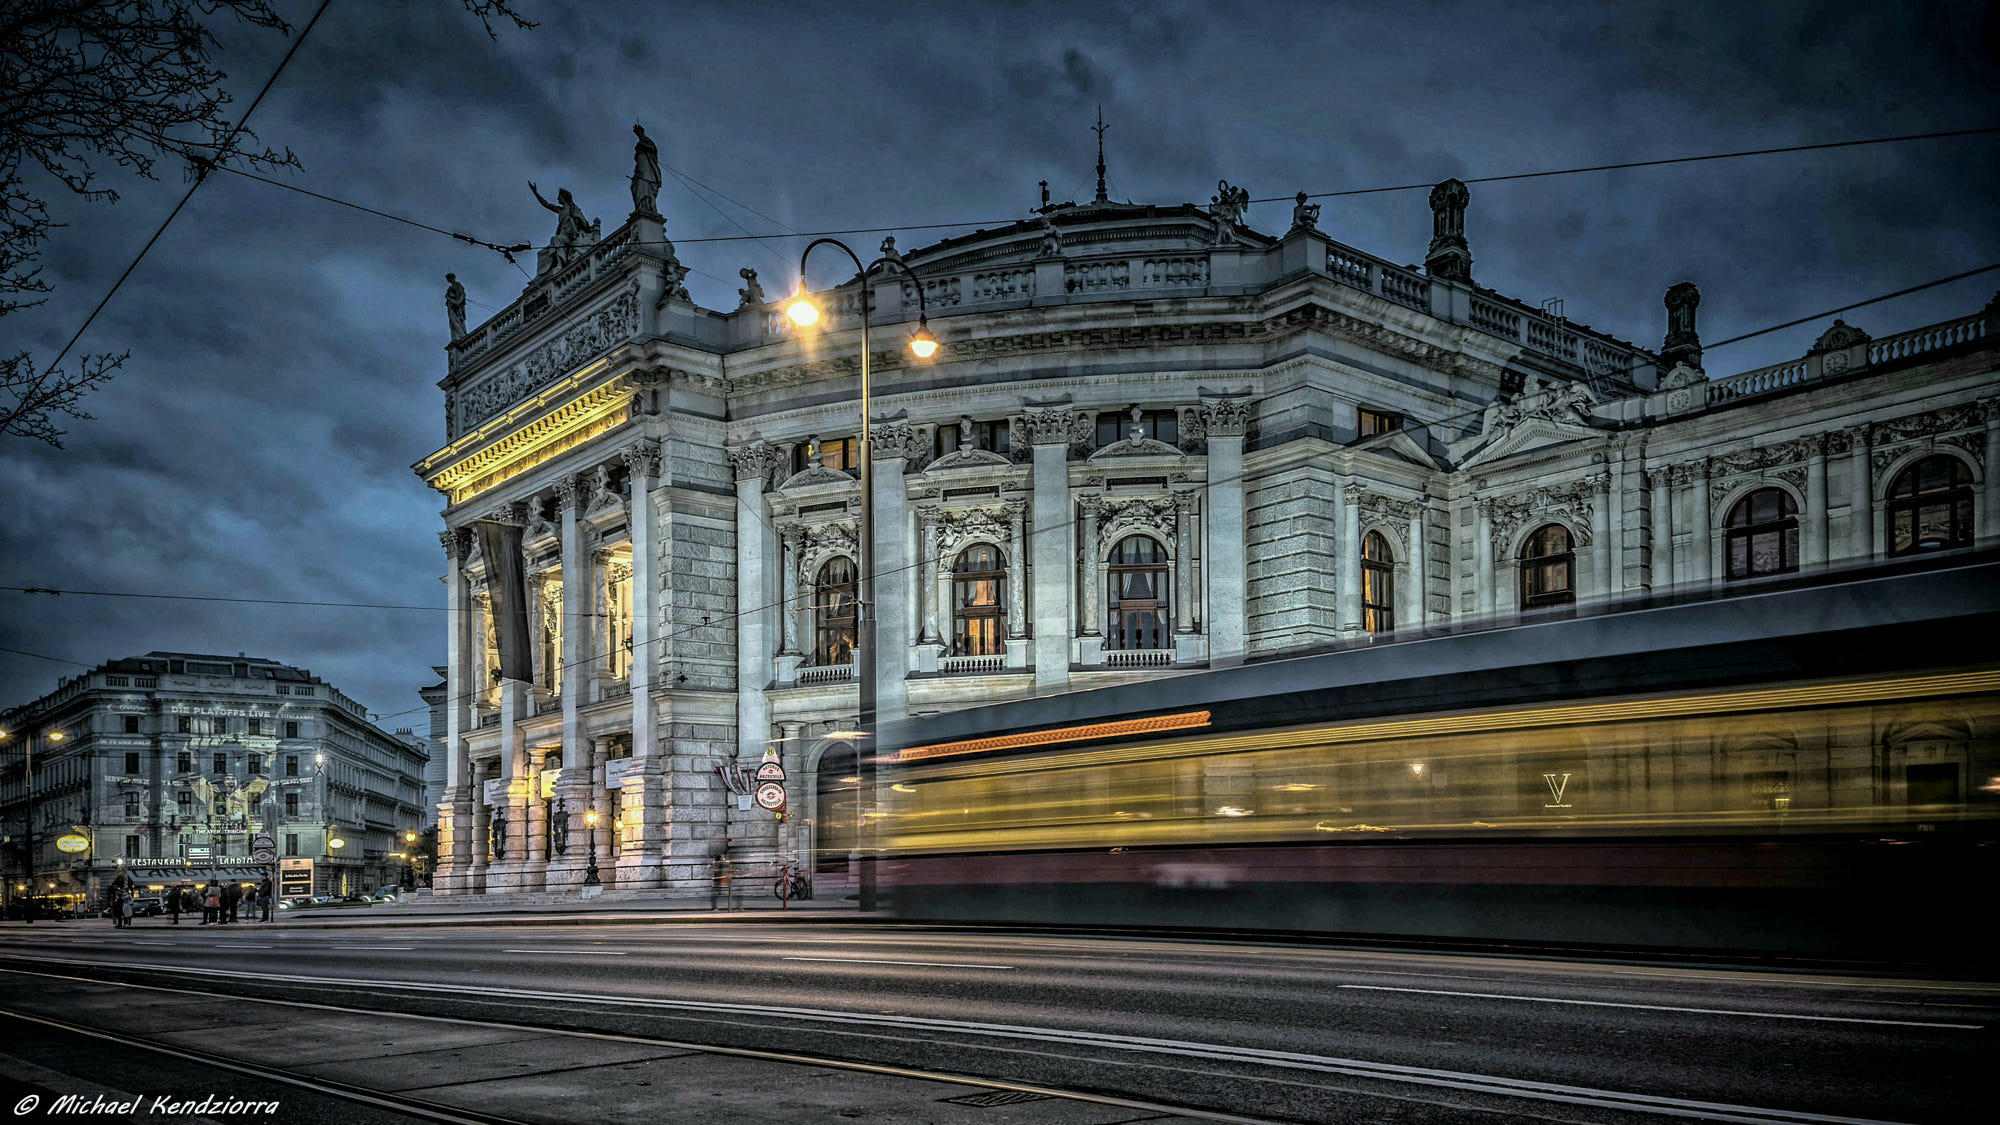 The Tram at the Burgtheater